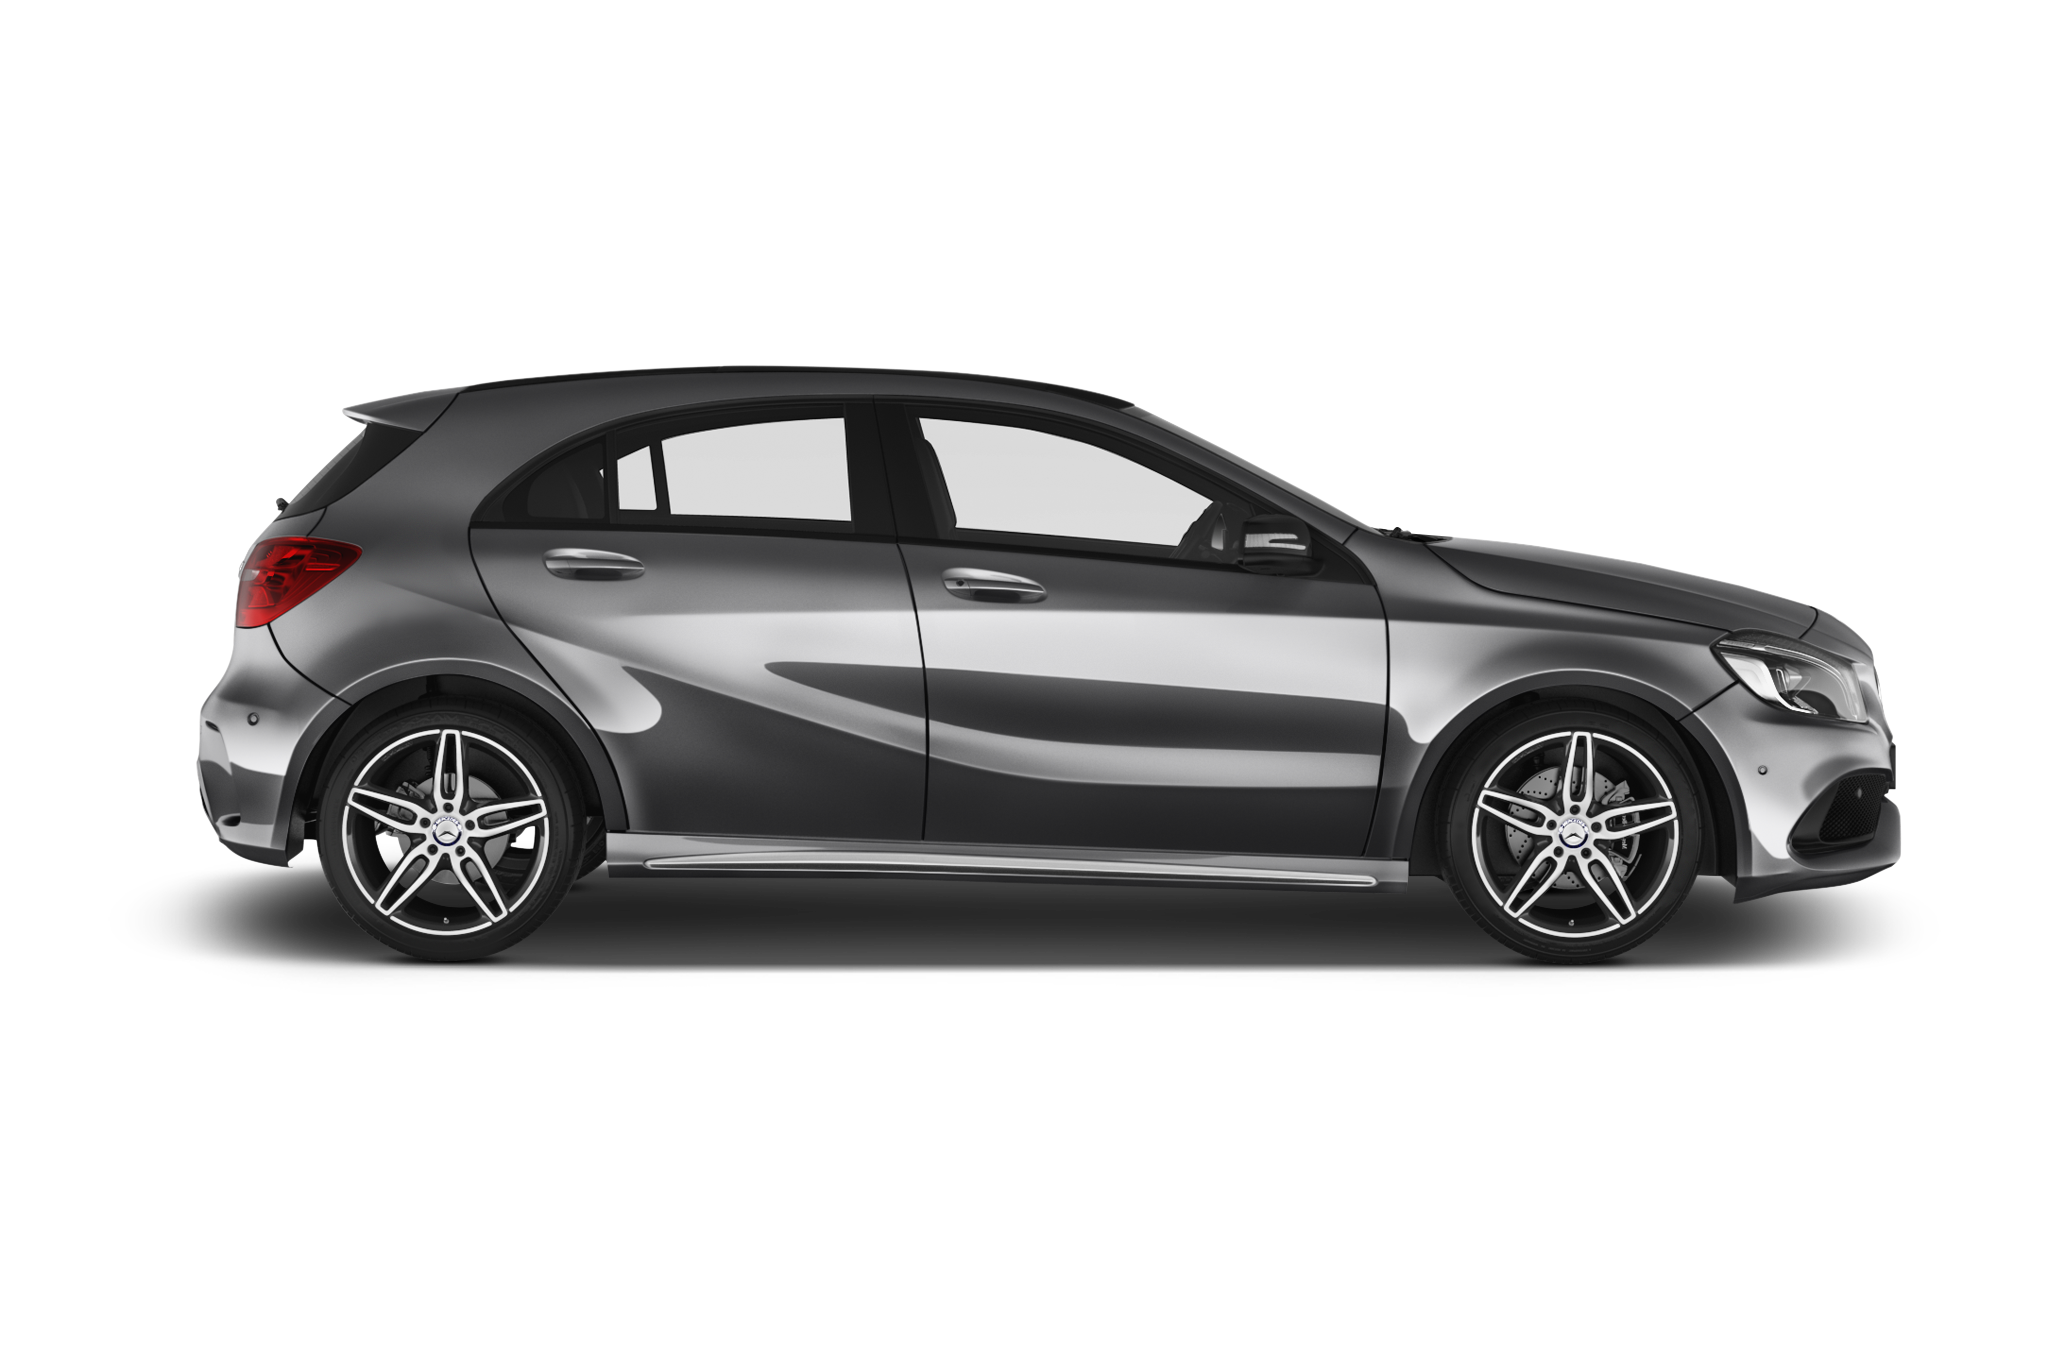 Mercedes-Benz A-Class company car side view